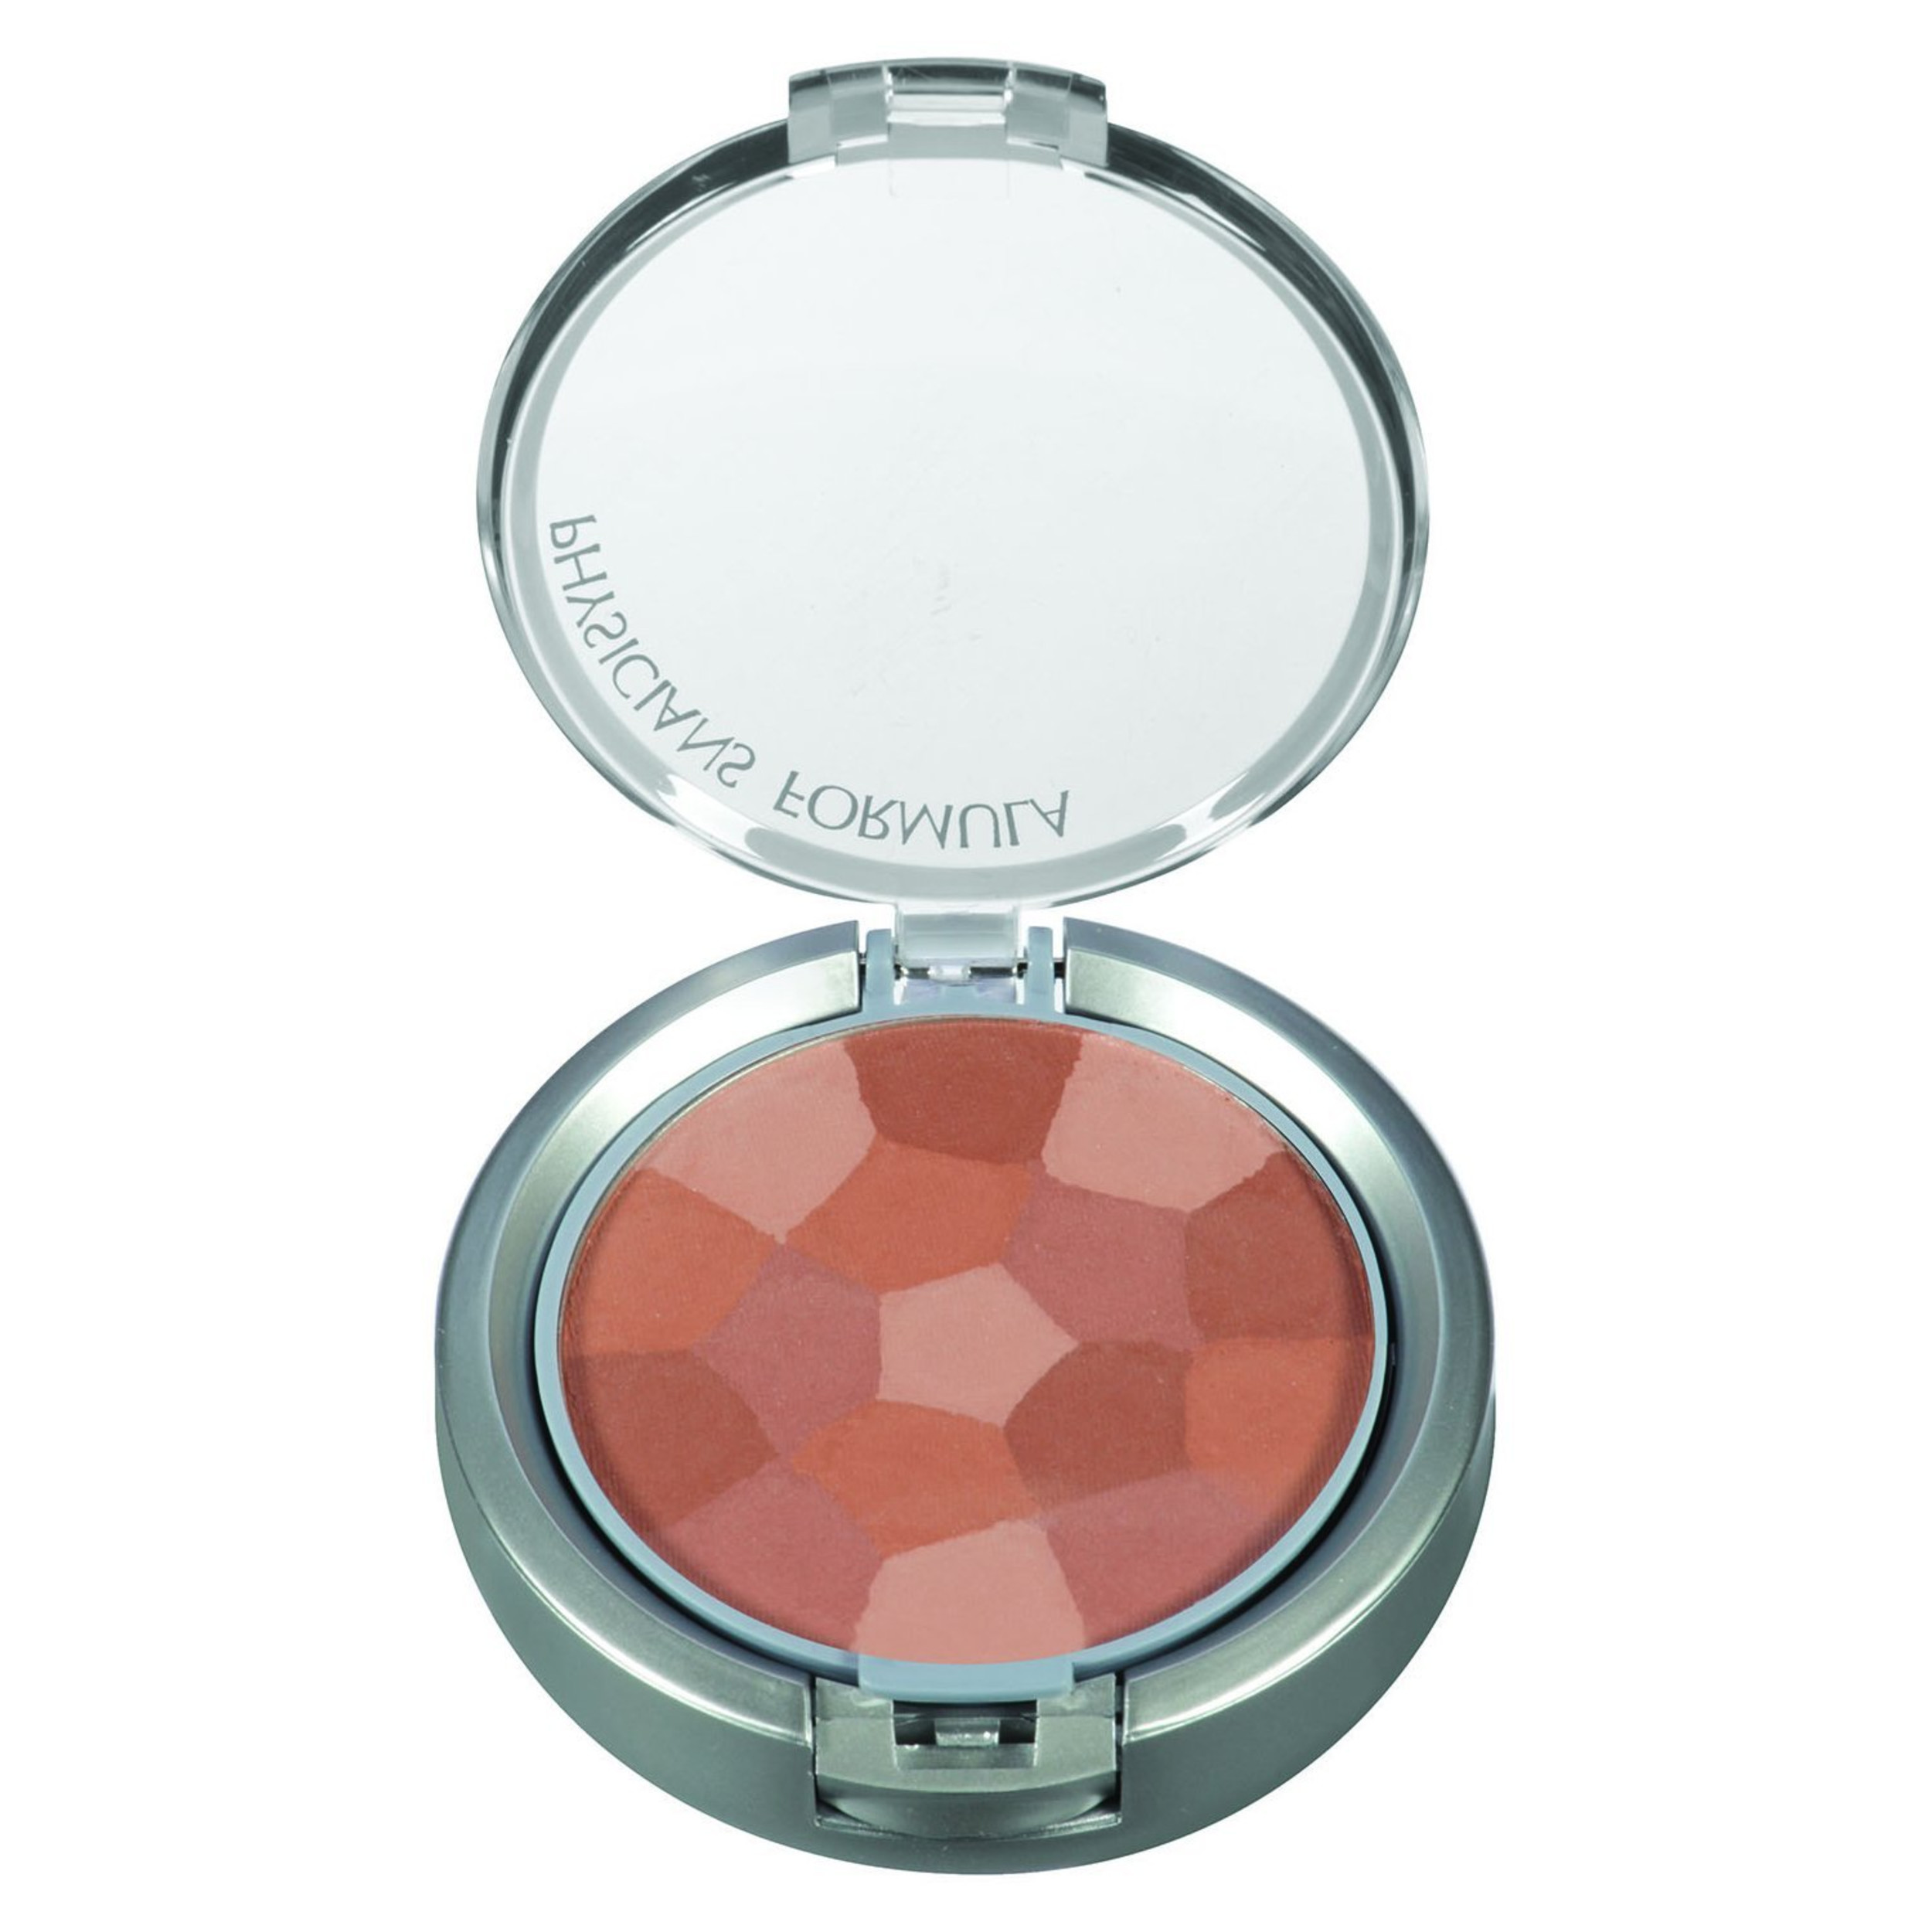 Physicians Formula Powder Palette Blush - Blushing Natural